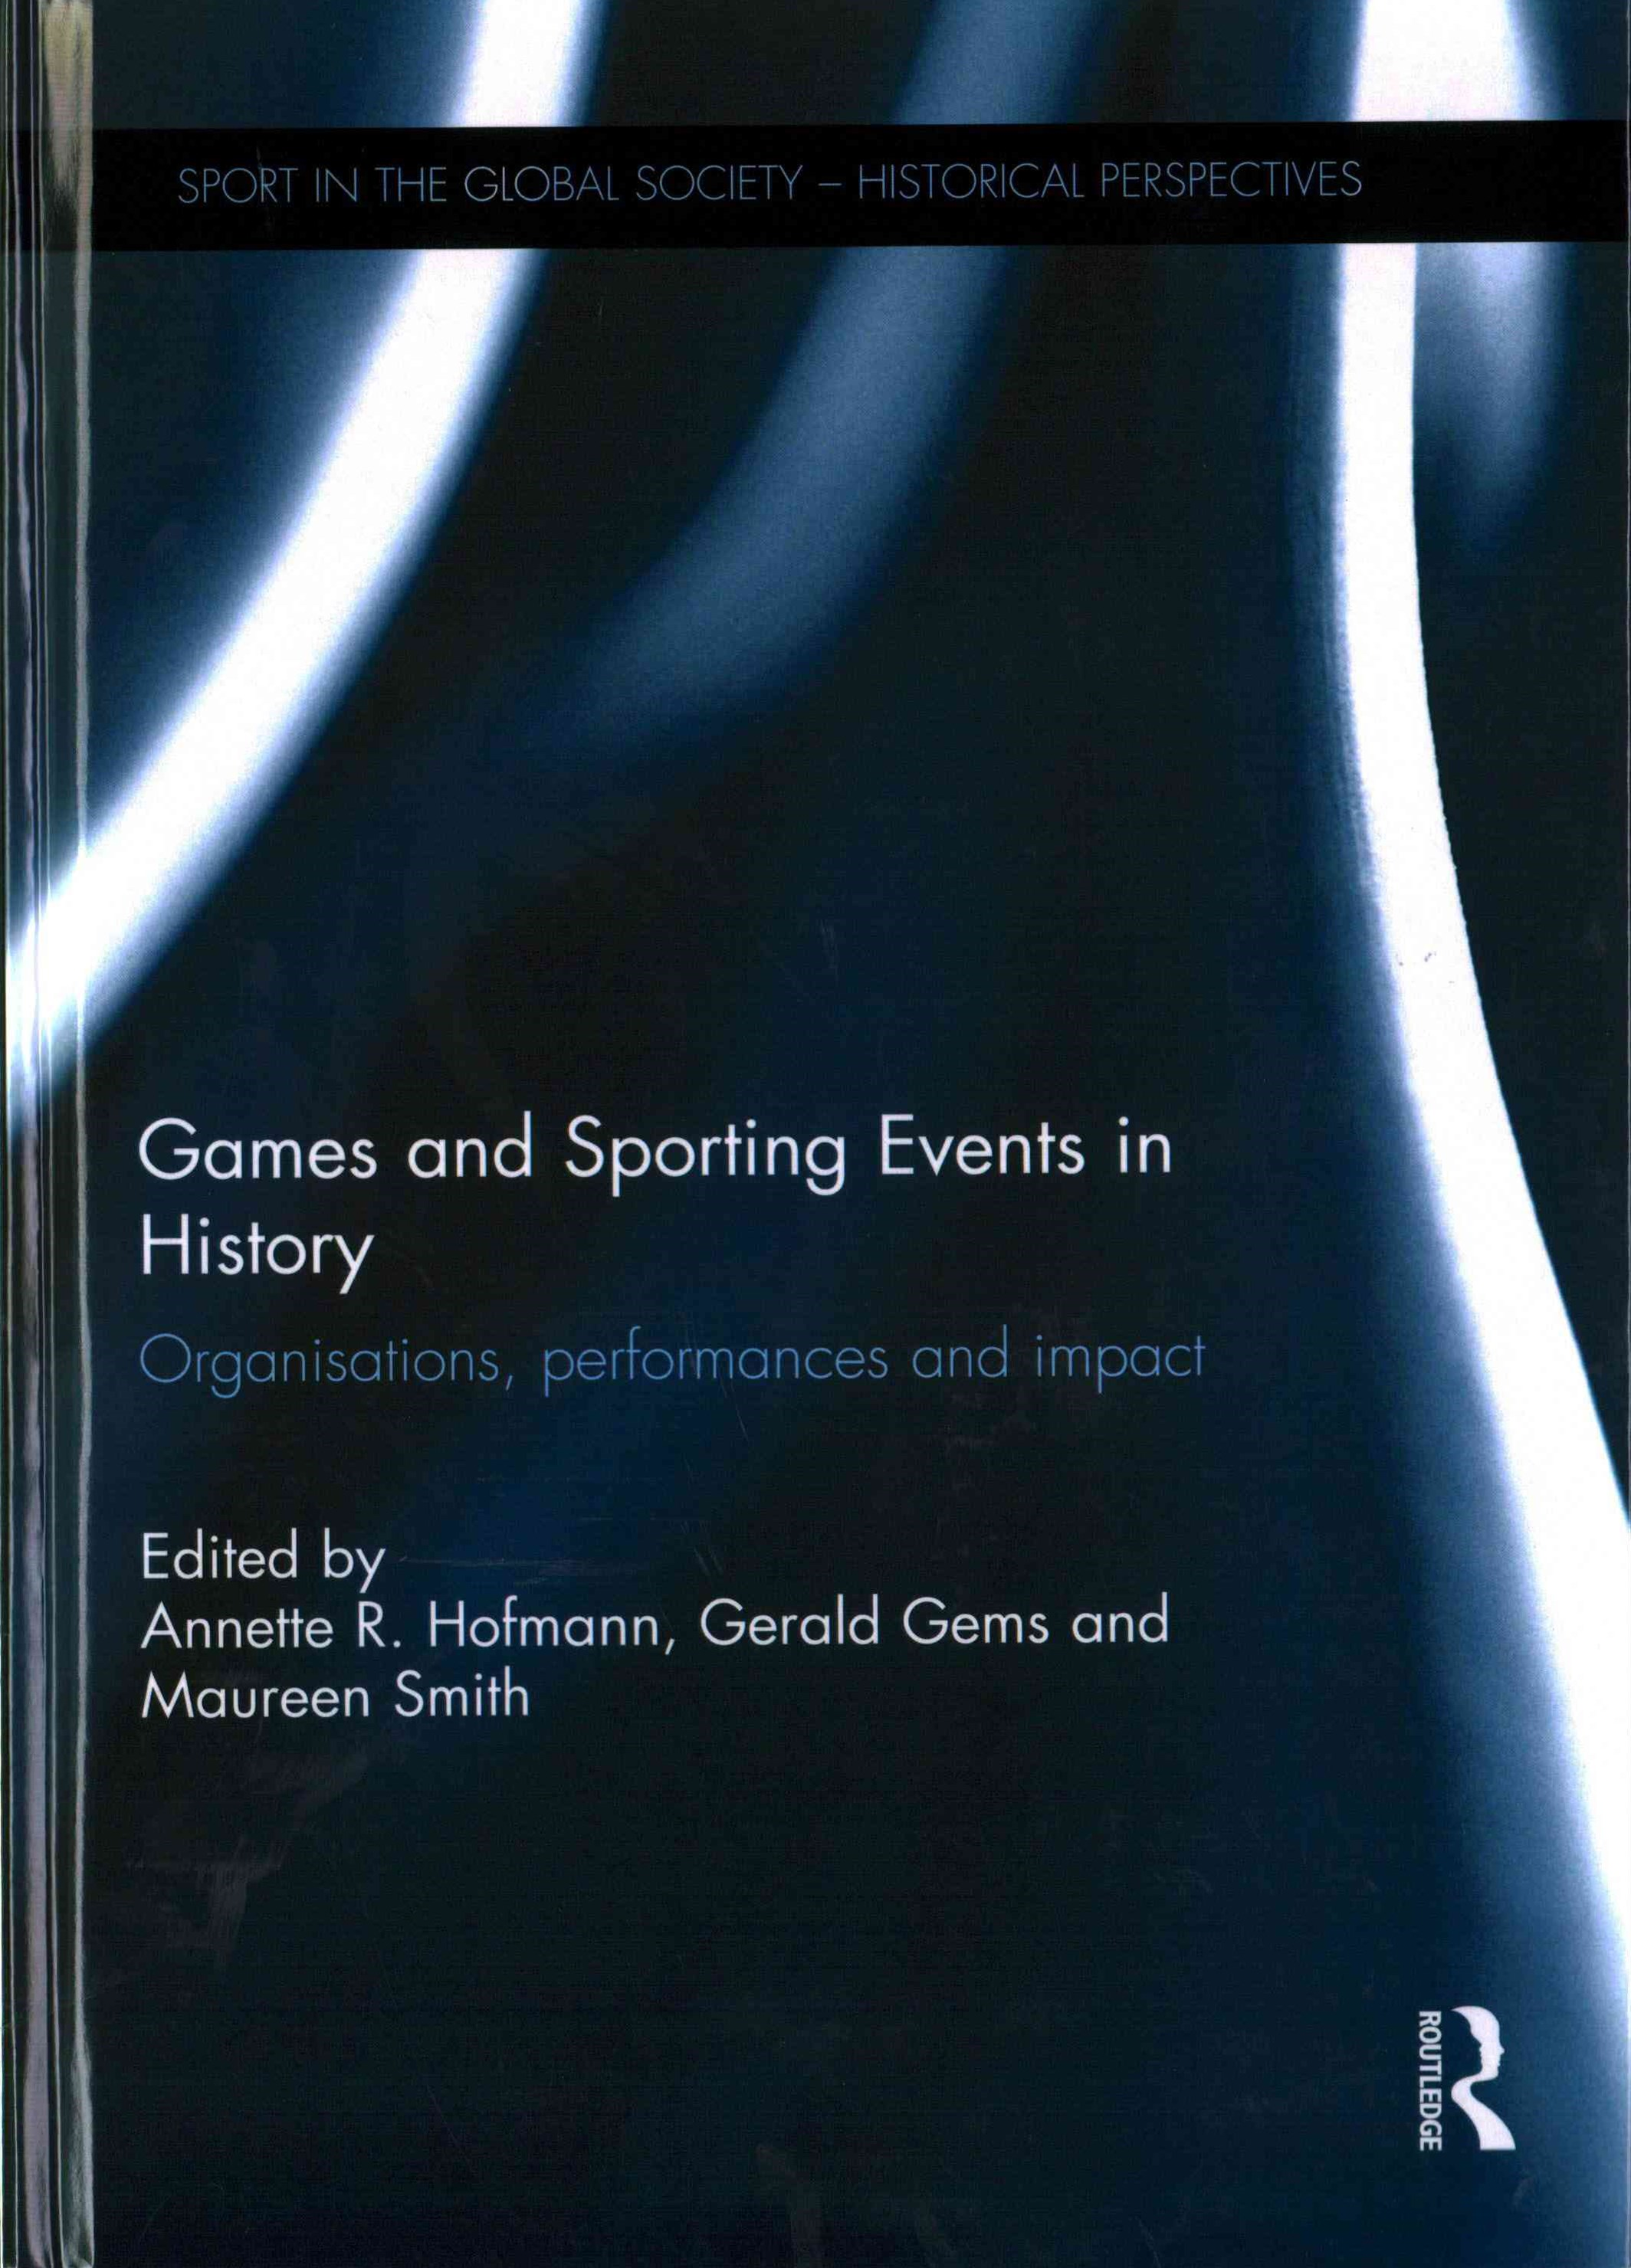 Games and Sporting Events in History